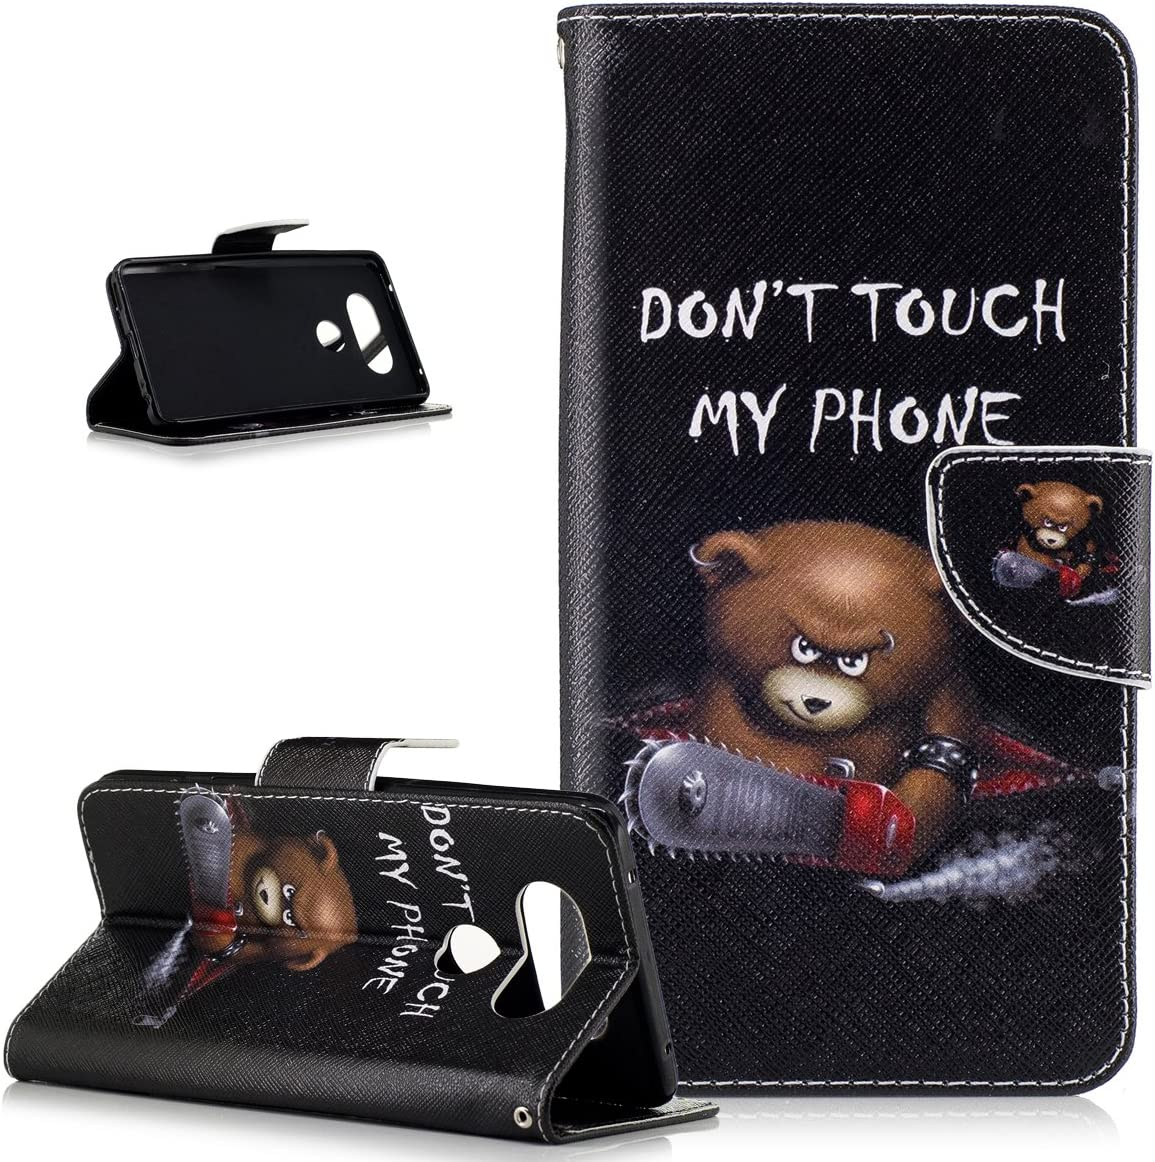 LG V20 Case,LG V20 Cover,ikasus Colorful Painted Premium PU Leather Fold Wallet Pouch Case Flip Stand Credit Card ID Holders Case Cover for LG V20,Chainsaw Bear Don't Touch Py Phone